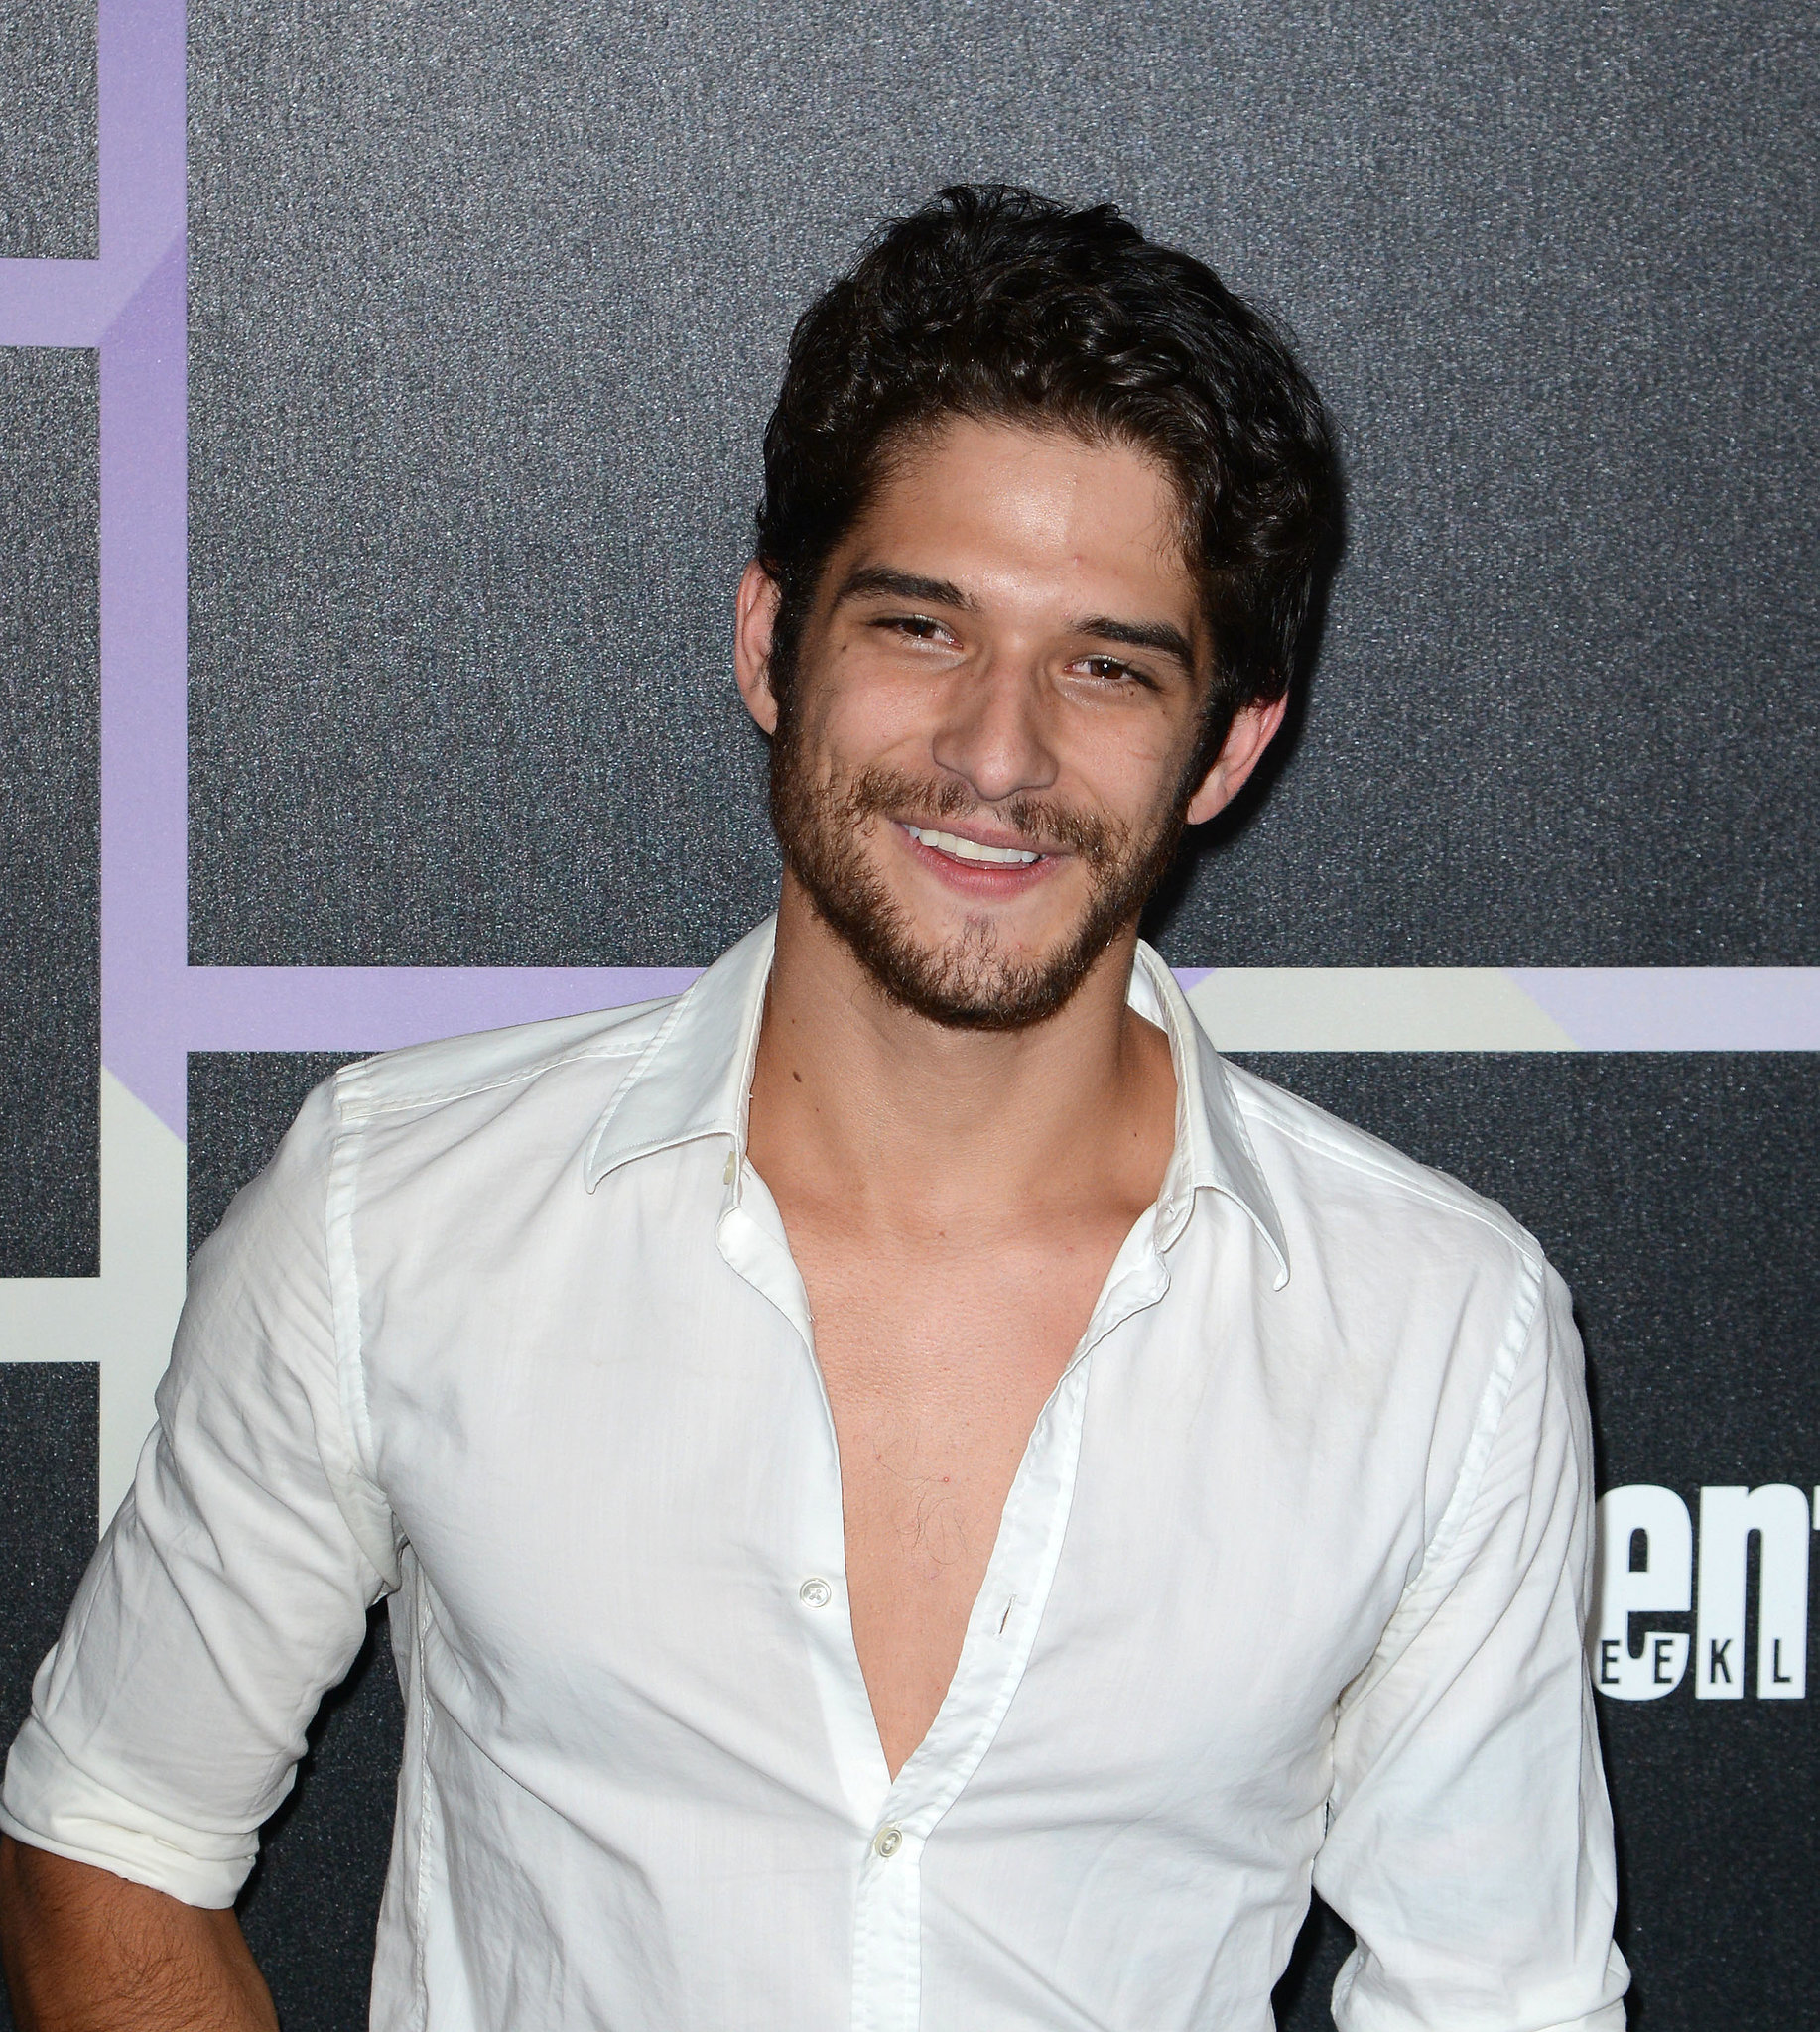 1000+ images about Tyler posey on Pinterest | Tyler posey